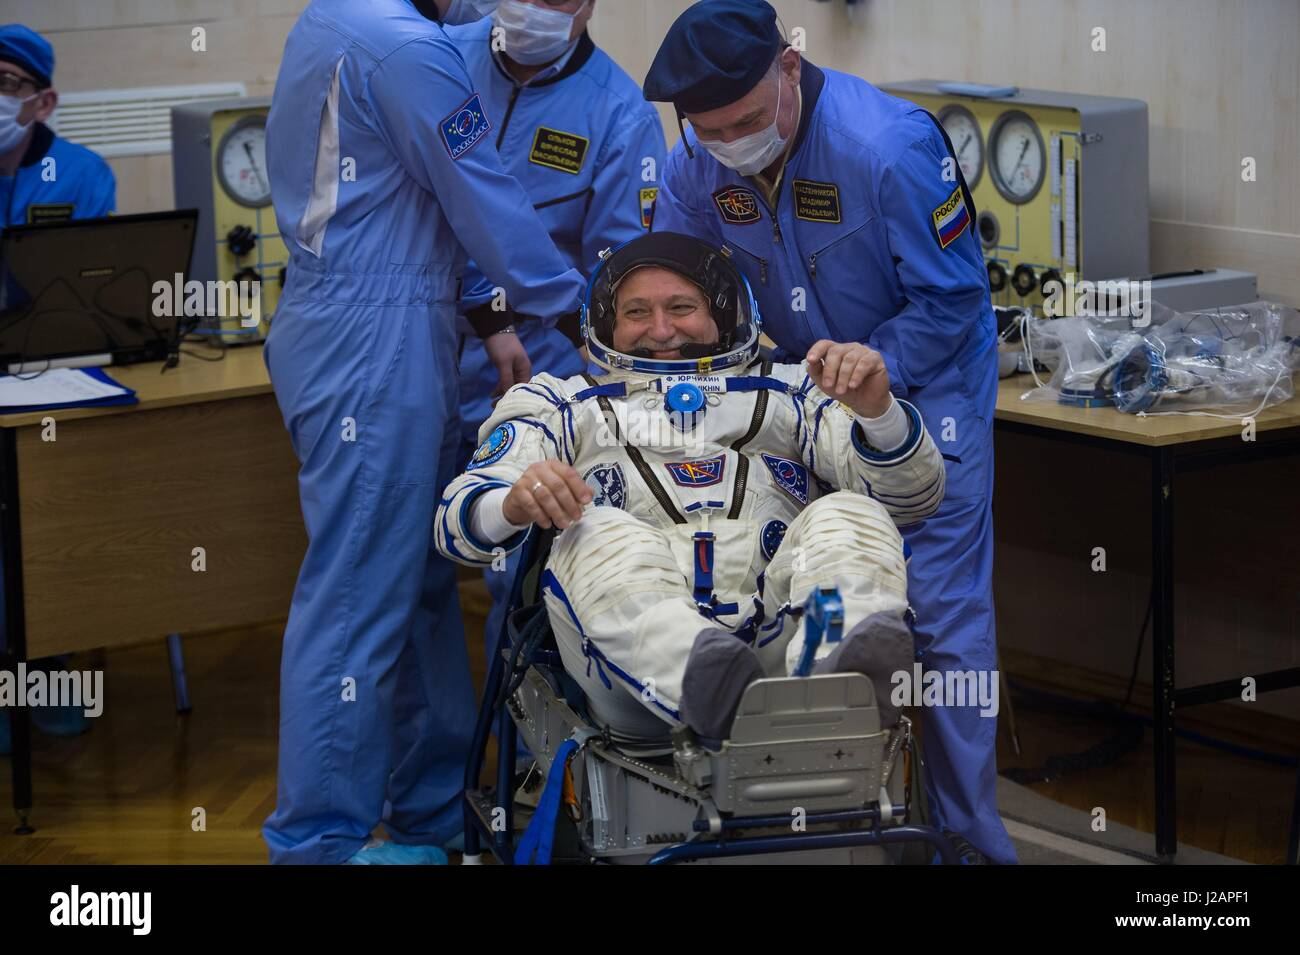 NASA International Space Station Expedition 51 prime crew member Russian cosmonaut Fyodor Yurchikhin of Roscosmos - Stock Image